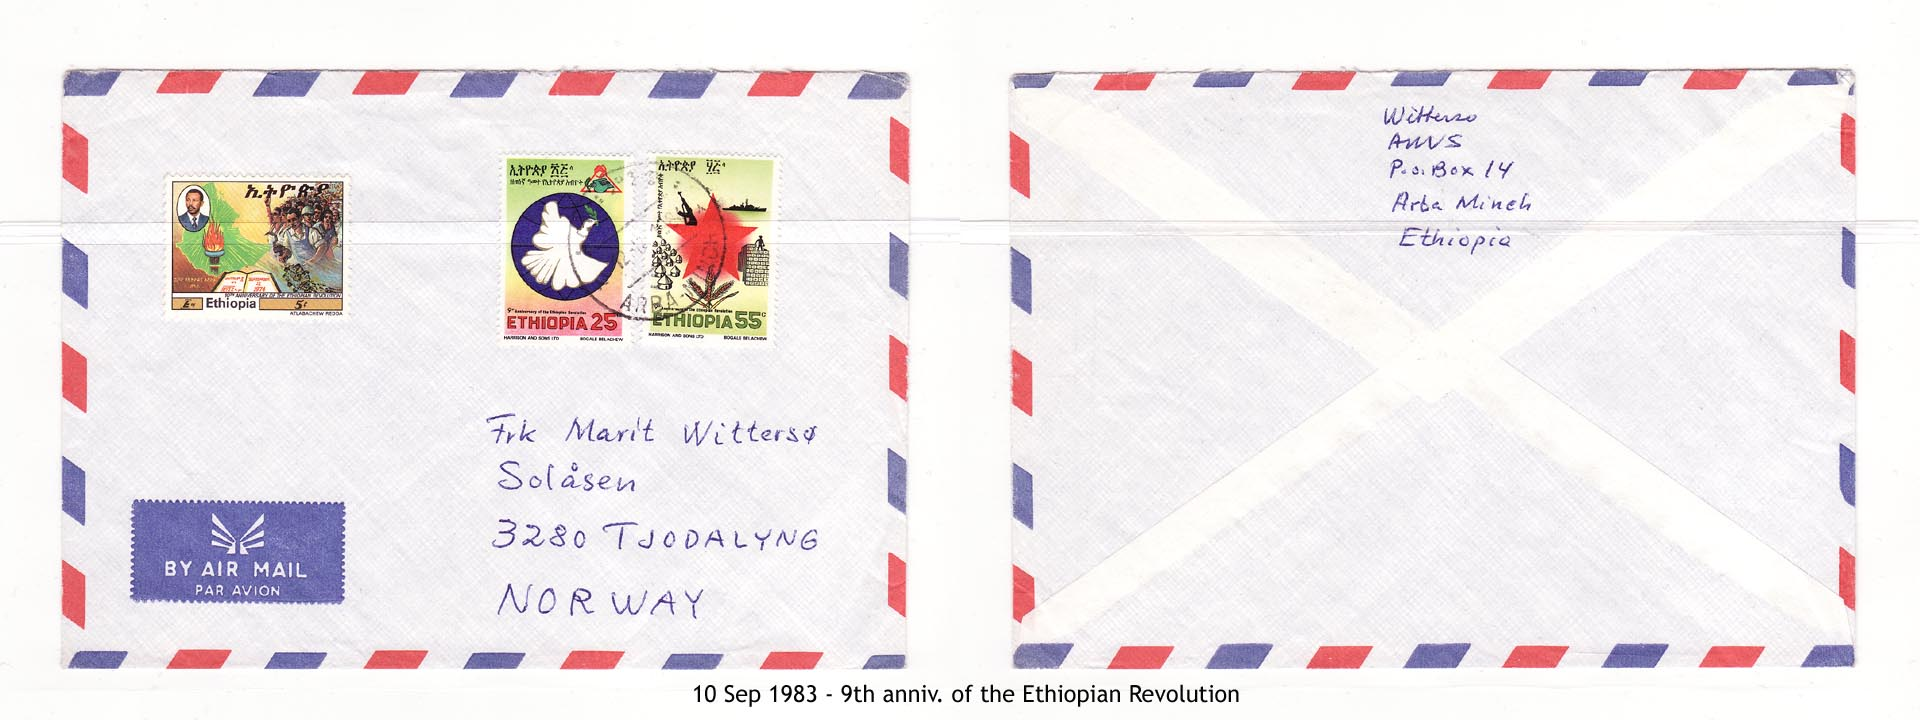 19830910 - 9th anniv. of the Ethiopian Revolution